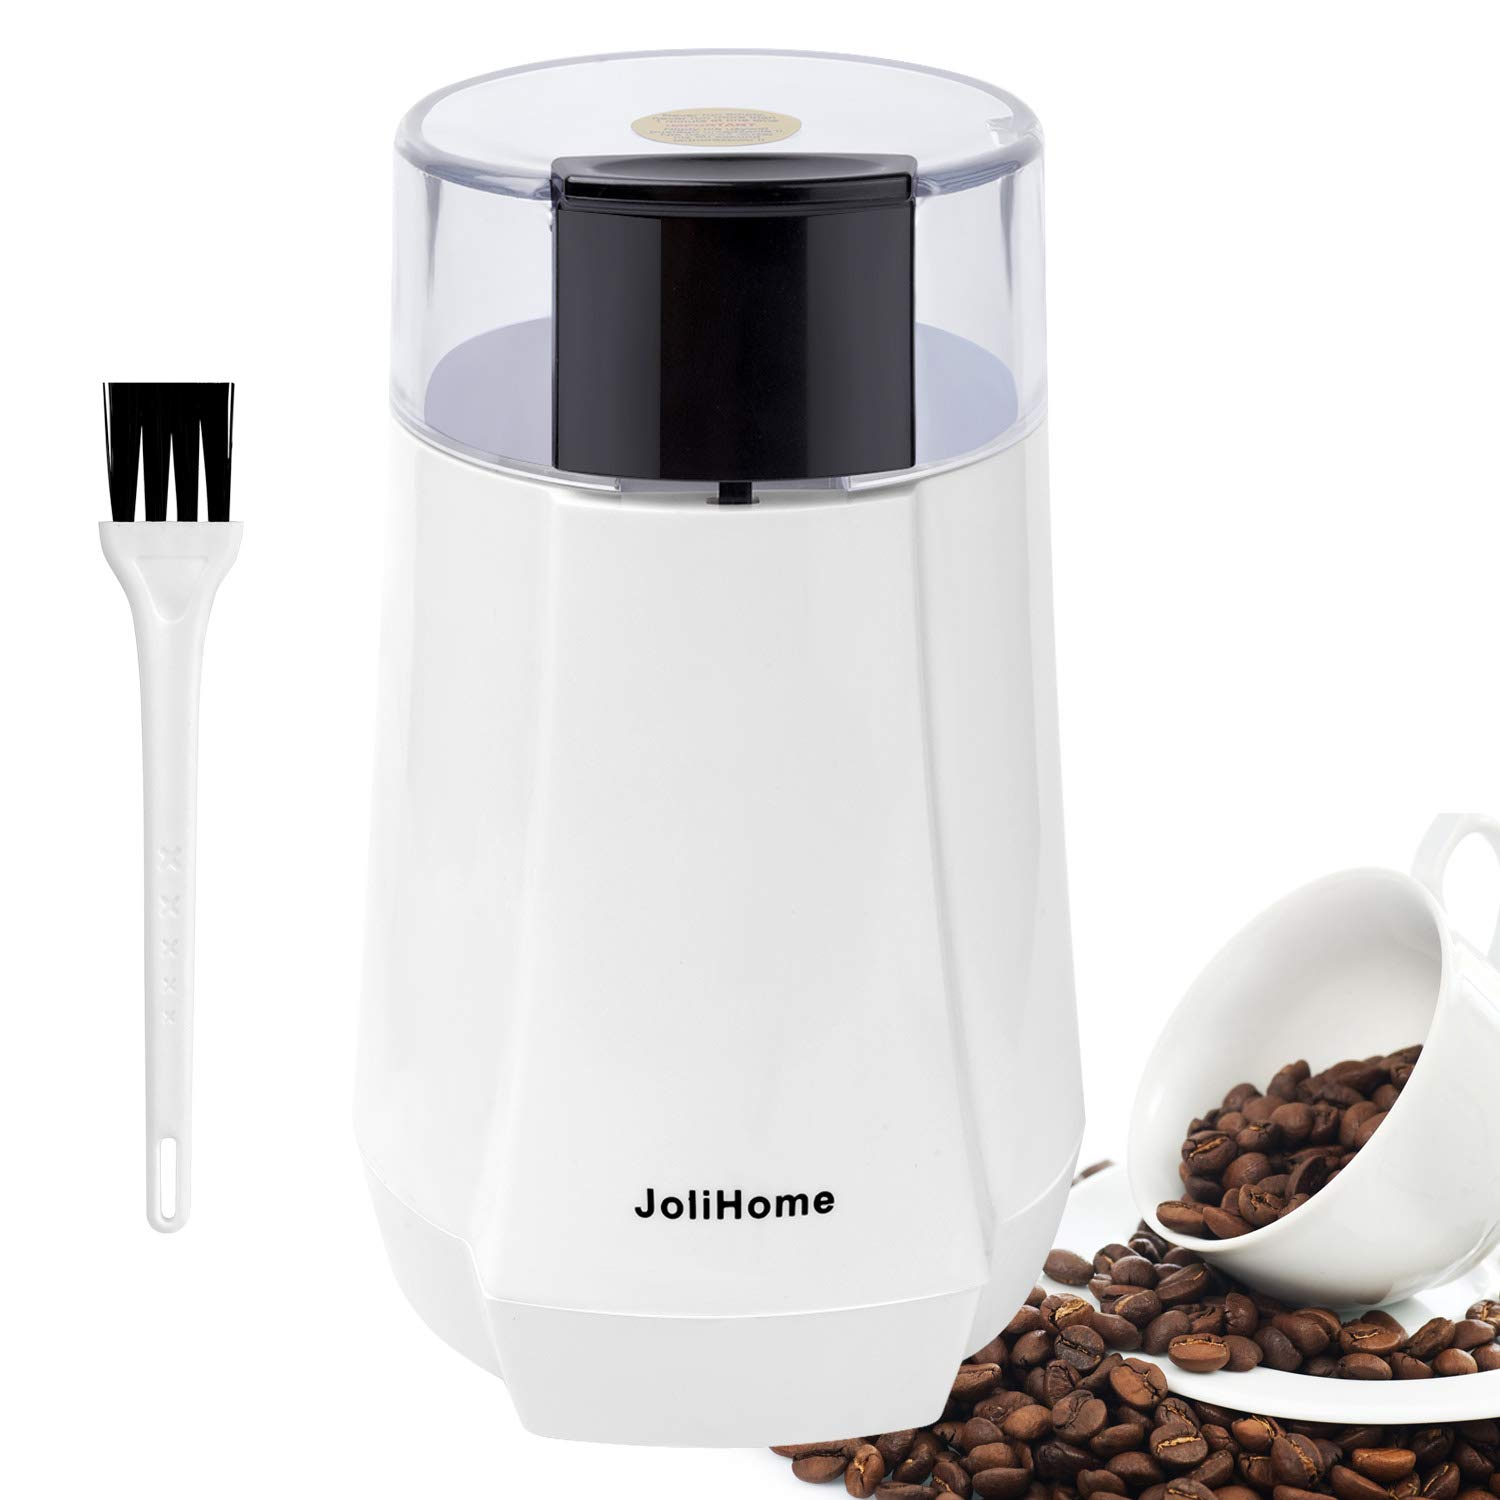 JoliHome Electric Coffee Grinder, Multifunctional Stainless Steel Blade Spice Grinder Fast Grinding Coffee Beans, Nuts, Grains, 2.5oz/70g, 150W. Cleaning Brush Included (White) by JoliHome